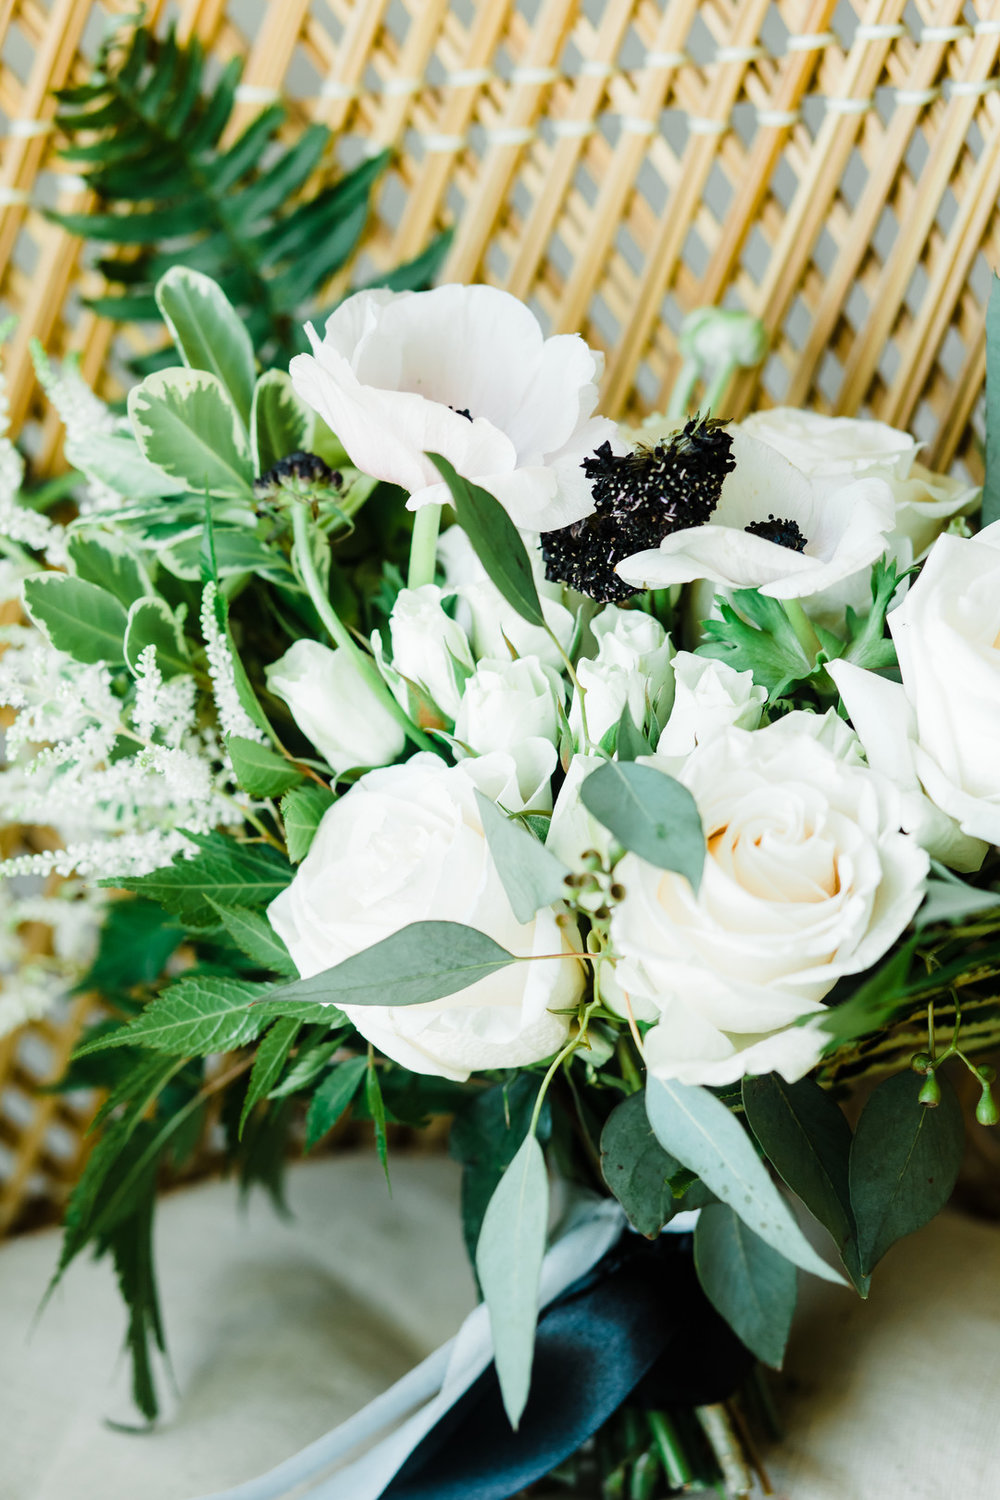 MoniLynnImages_WeddingInspoBridalWildFlowerWeddingVenueMonilynnimages14_big.jpg